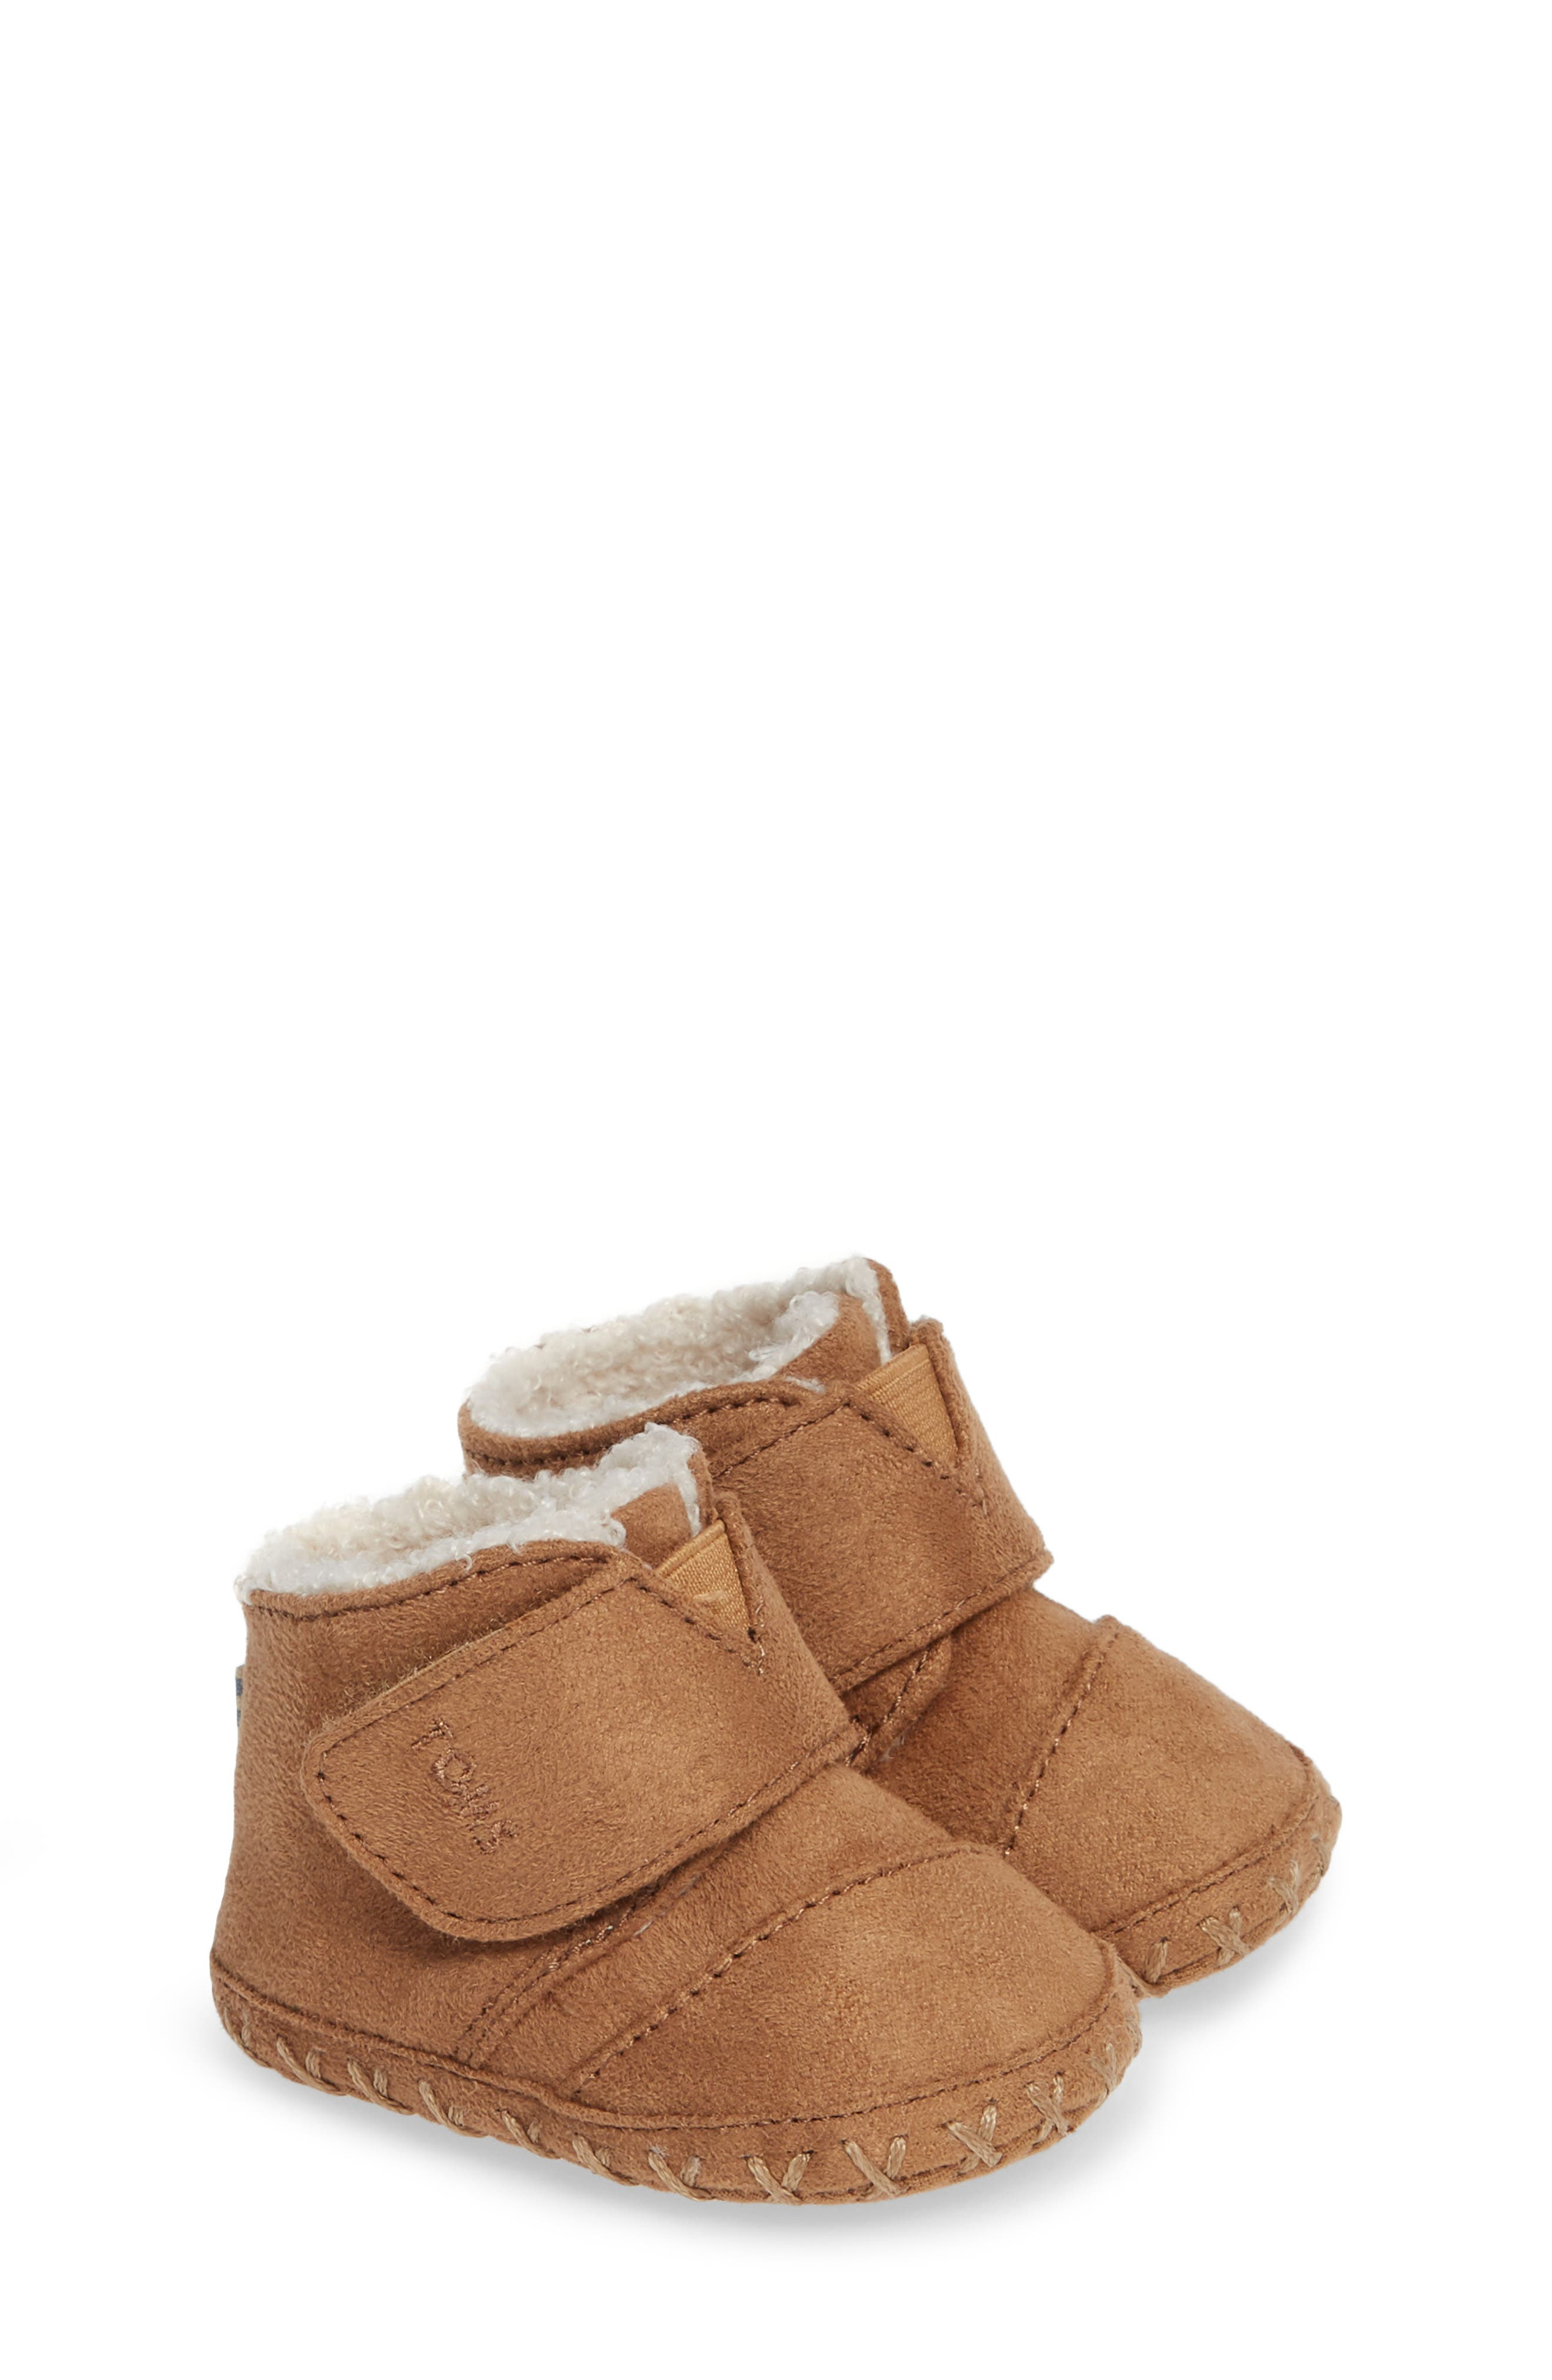 Tiny Cuna Faux Fur Crib Bootie,                             Alternate thumbnail 2, color,                             TOFFEE MICROFIBER